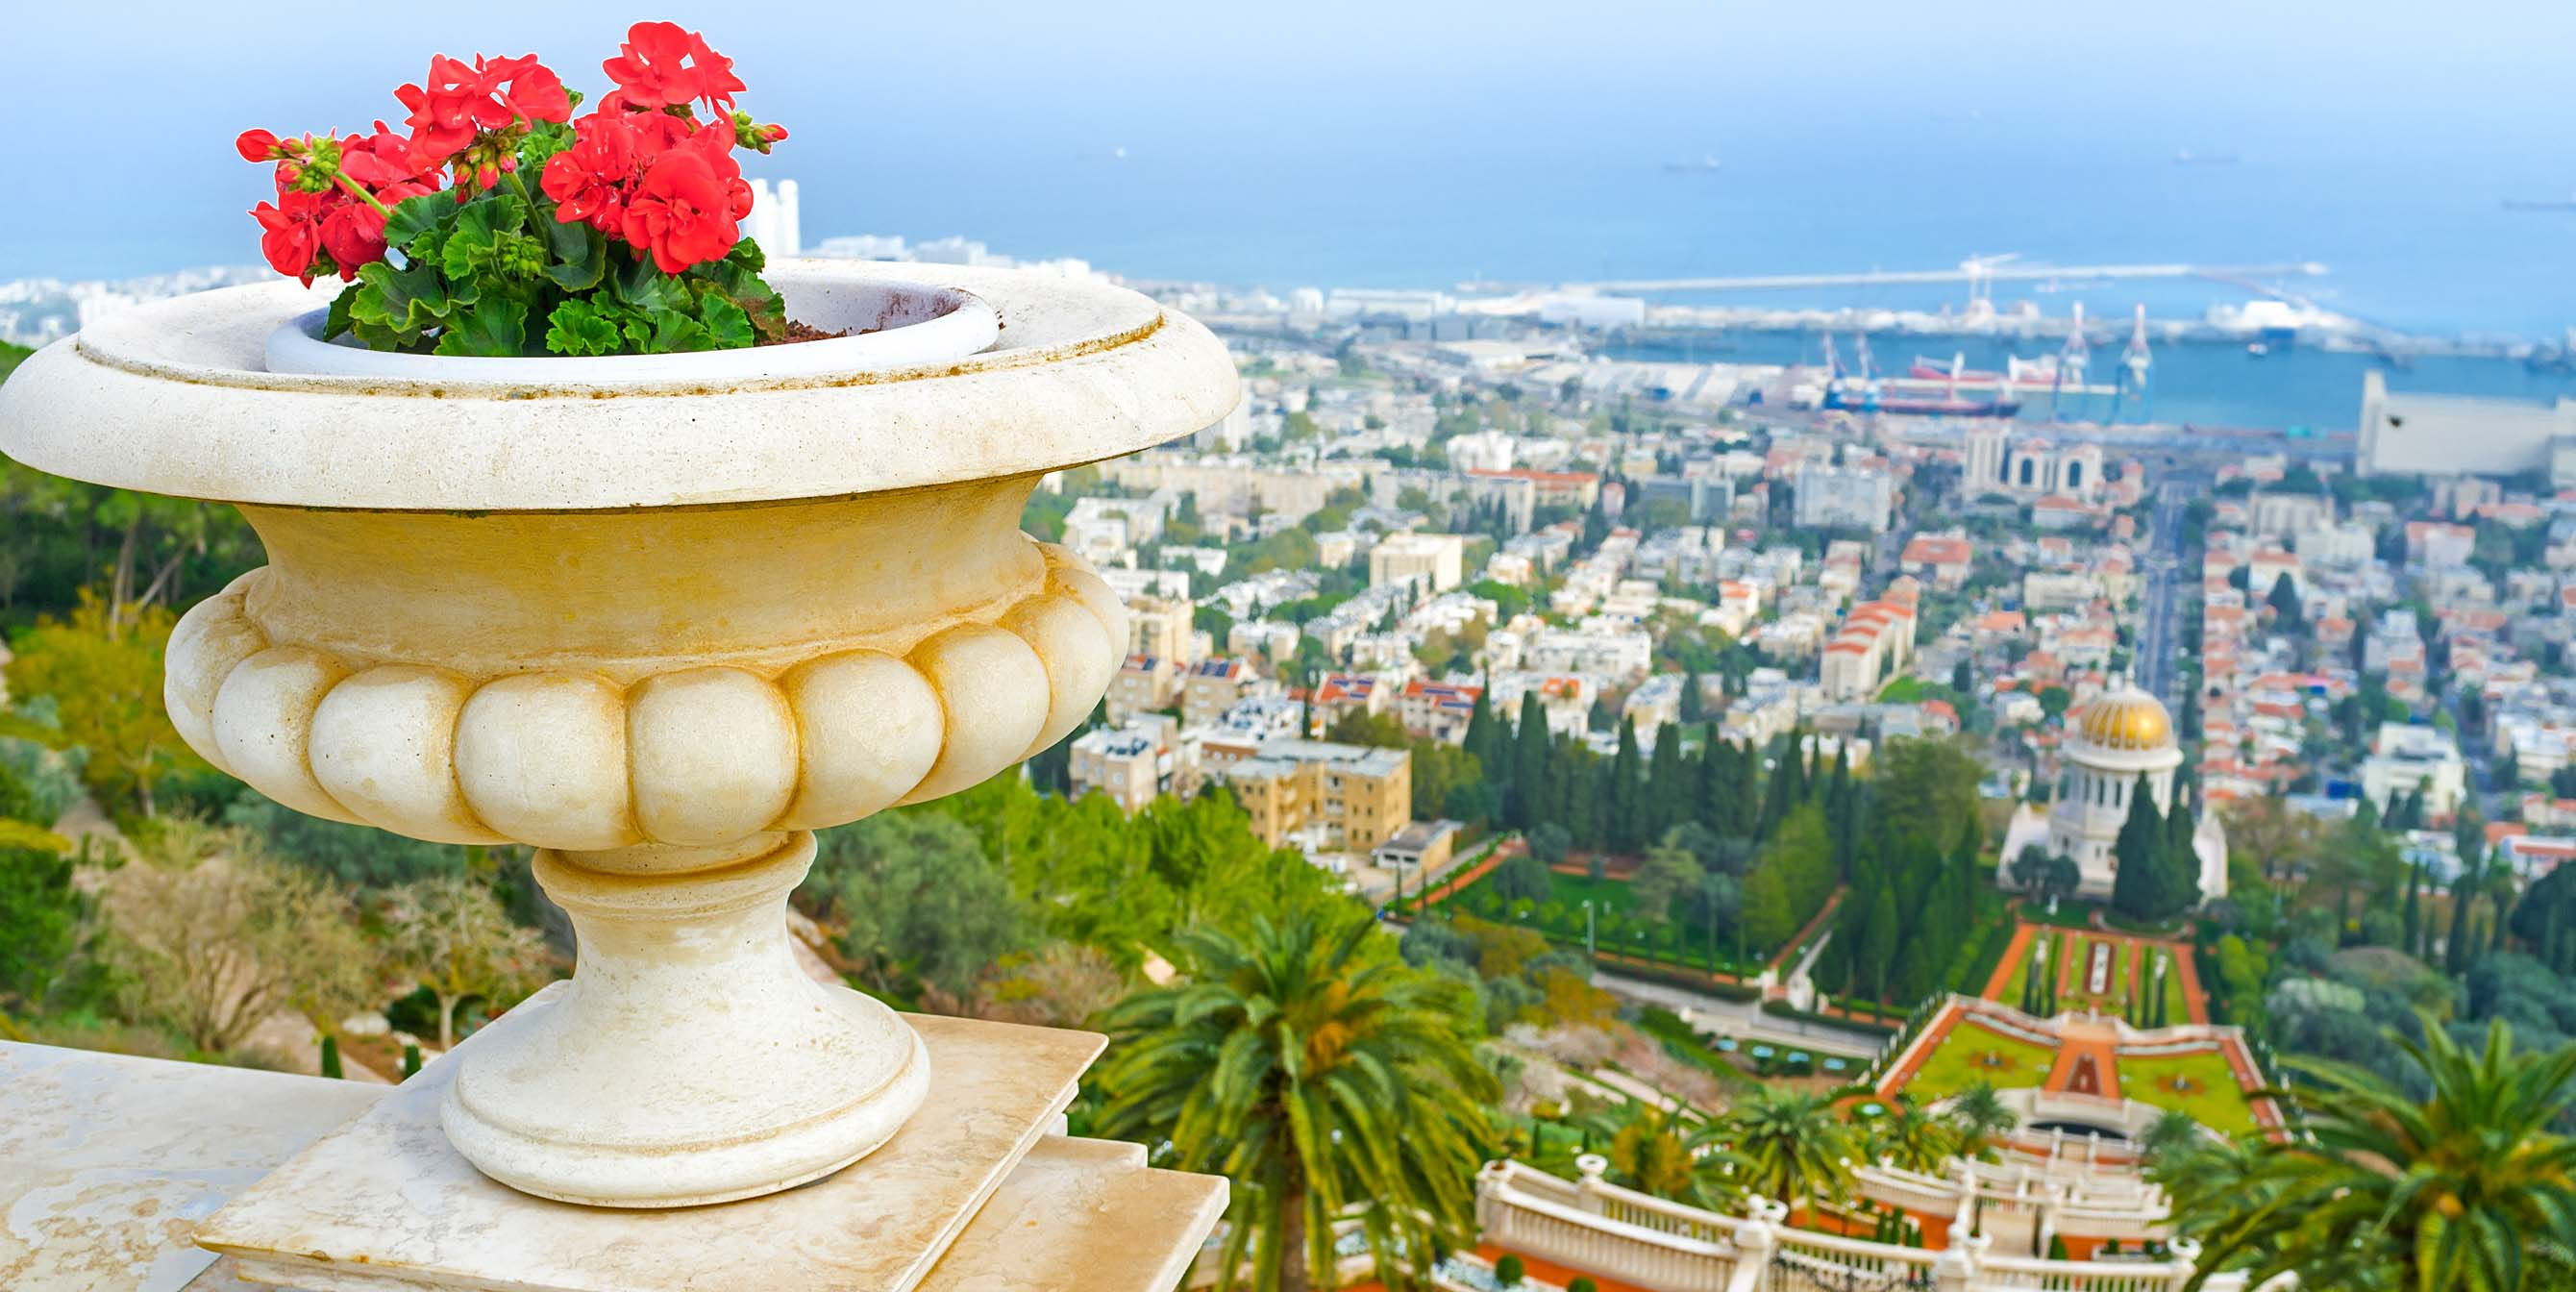 View overlooking Tel Aviv